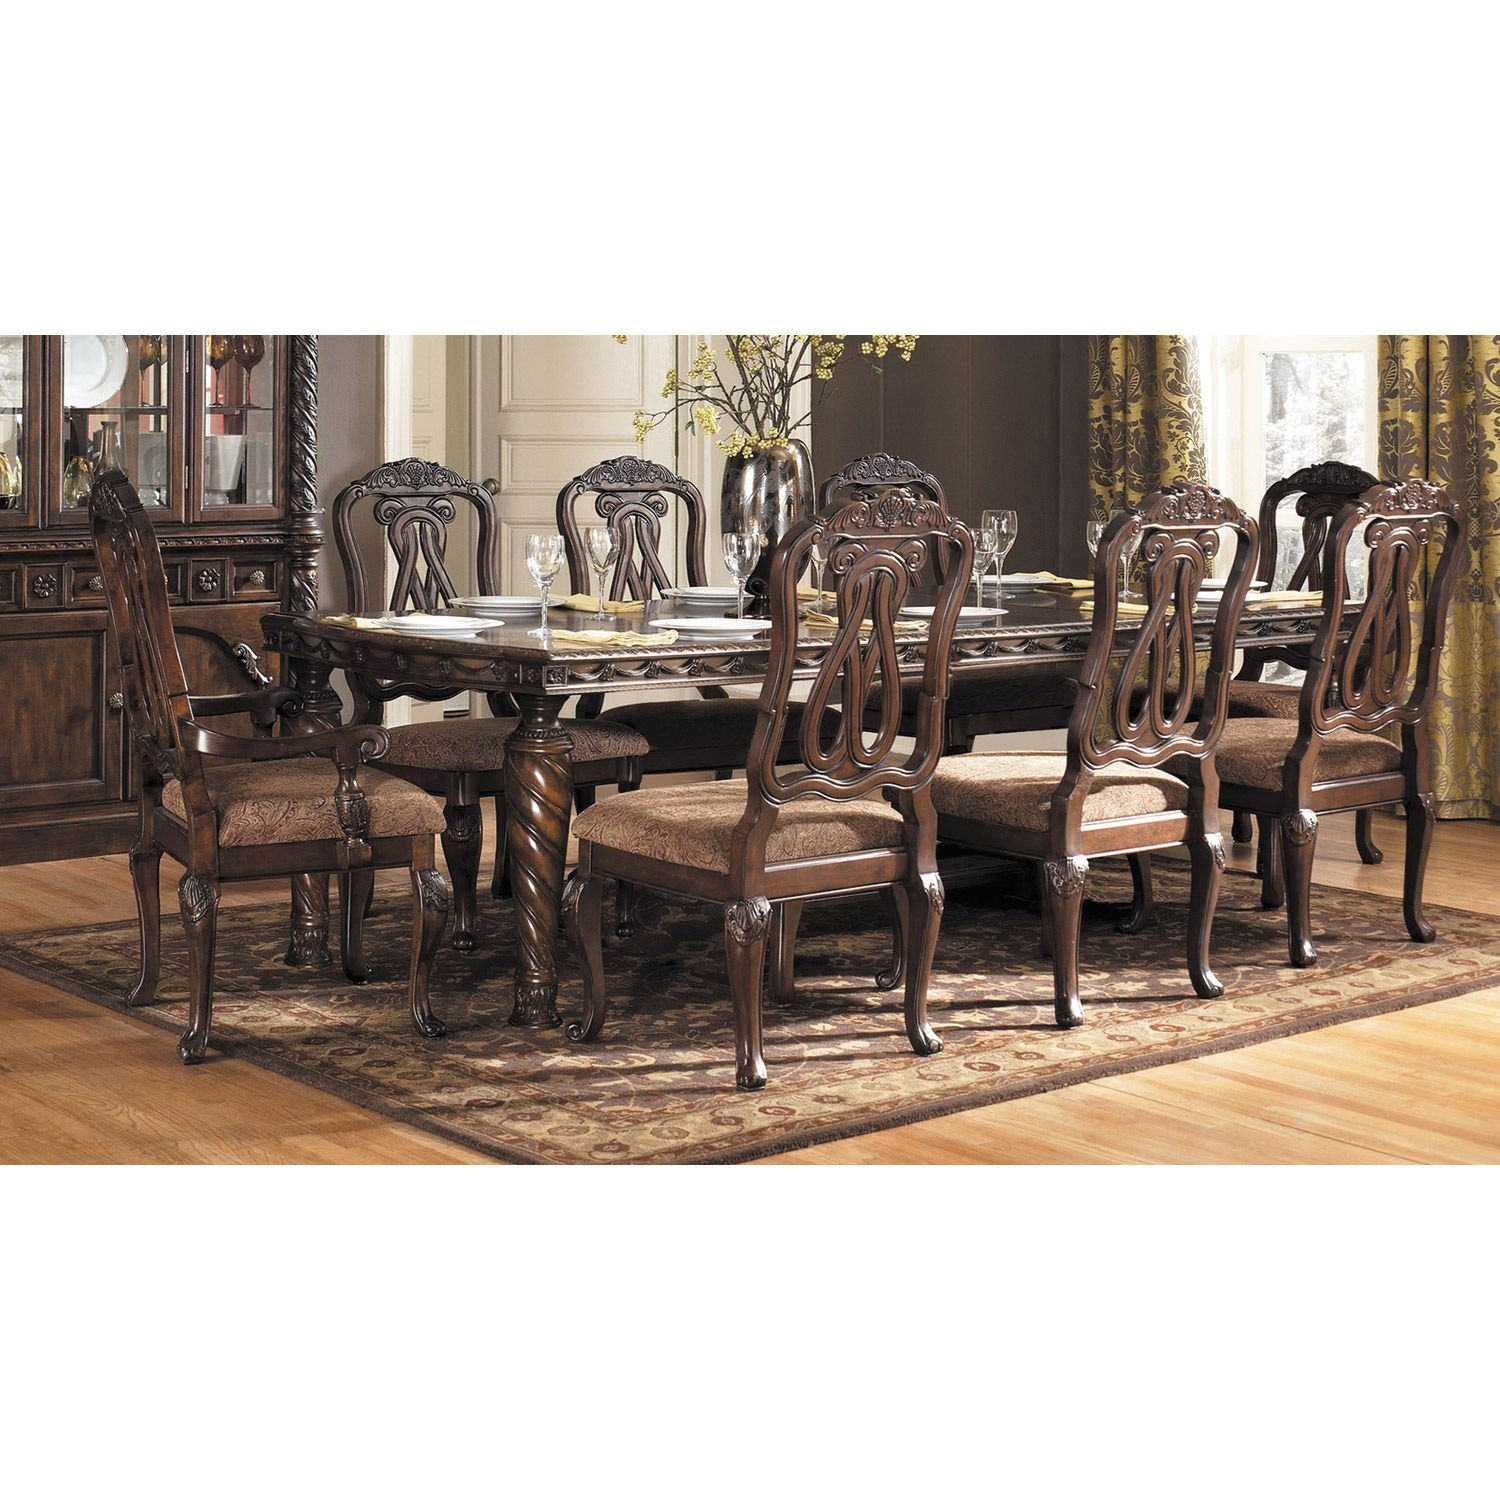 North Shore Dining Table D553 35 Ashley Furniture AFW